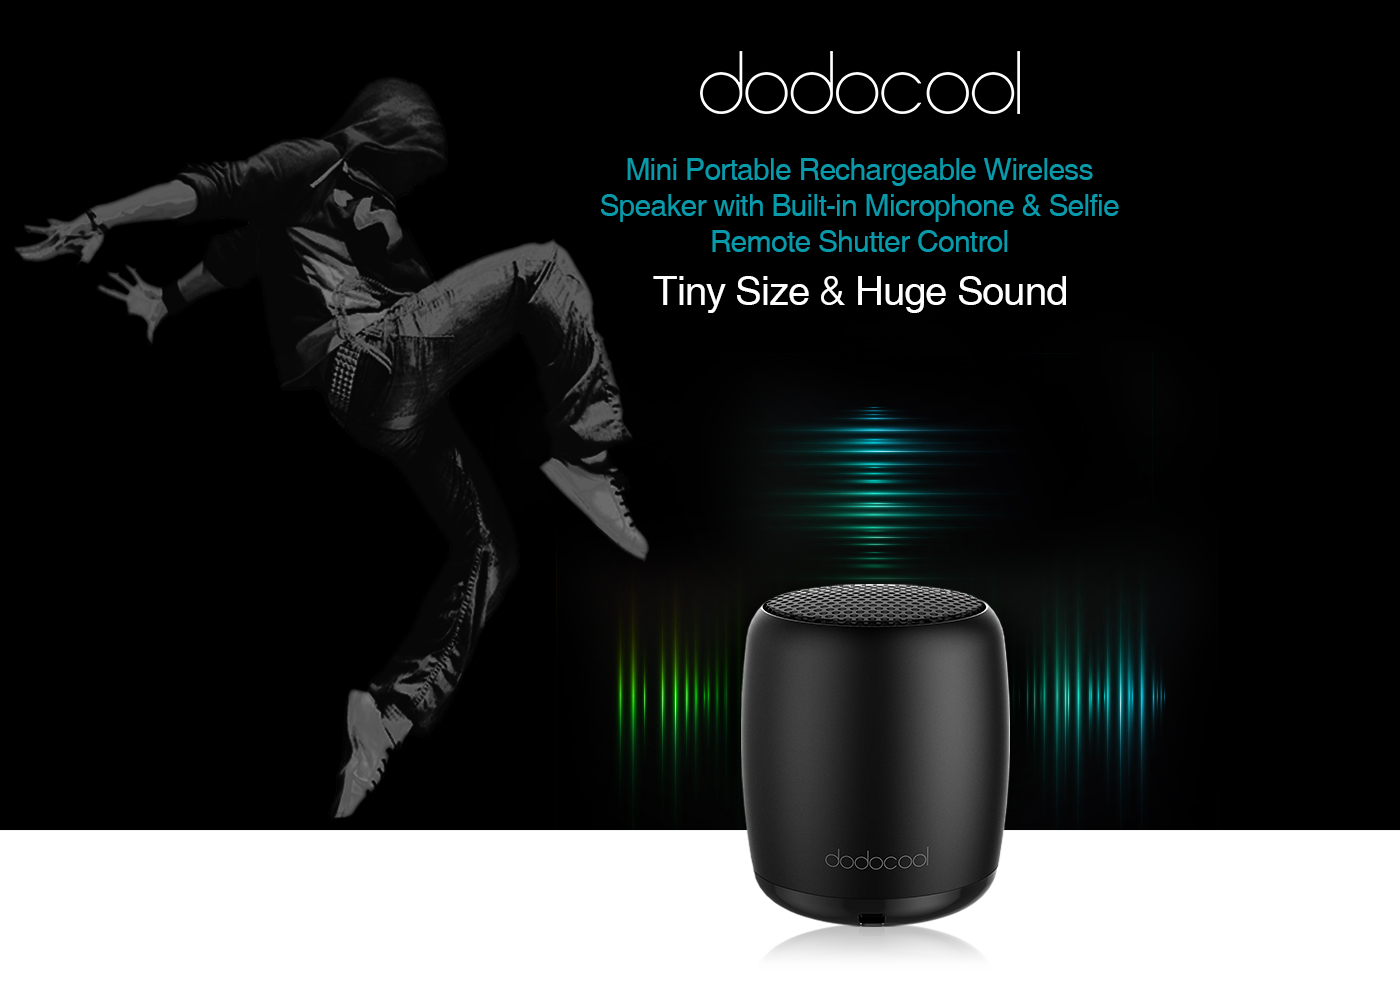 $3 OFF dodocool Rechargeable Wireless Speaker,free shipping $8.99